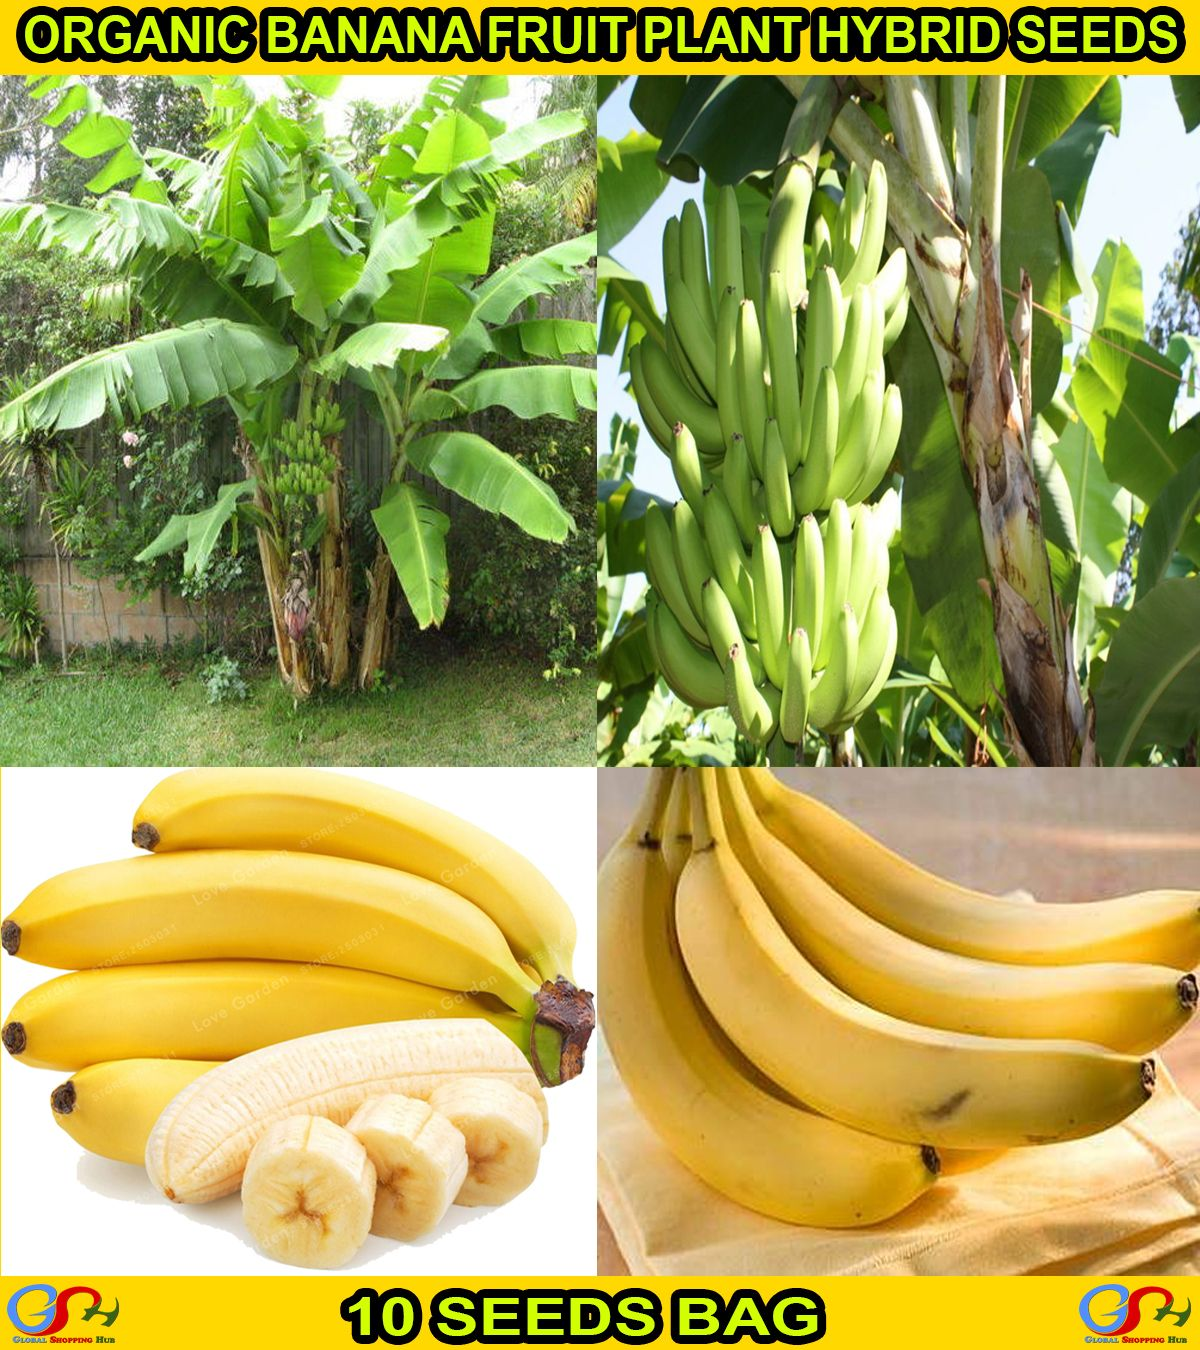 Fresh Imported Organic Banana Fruit Plant Hybrid Seeds 10 Seeds Bag In 2020 Fruit Plants Banana Fruit Seeds